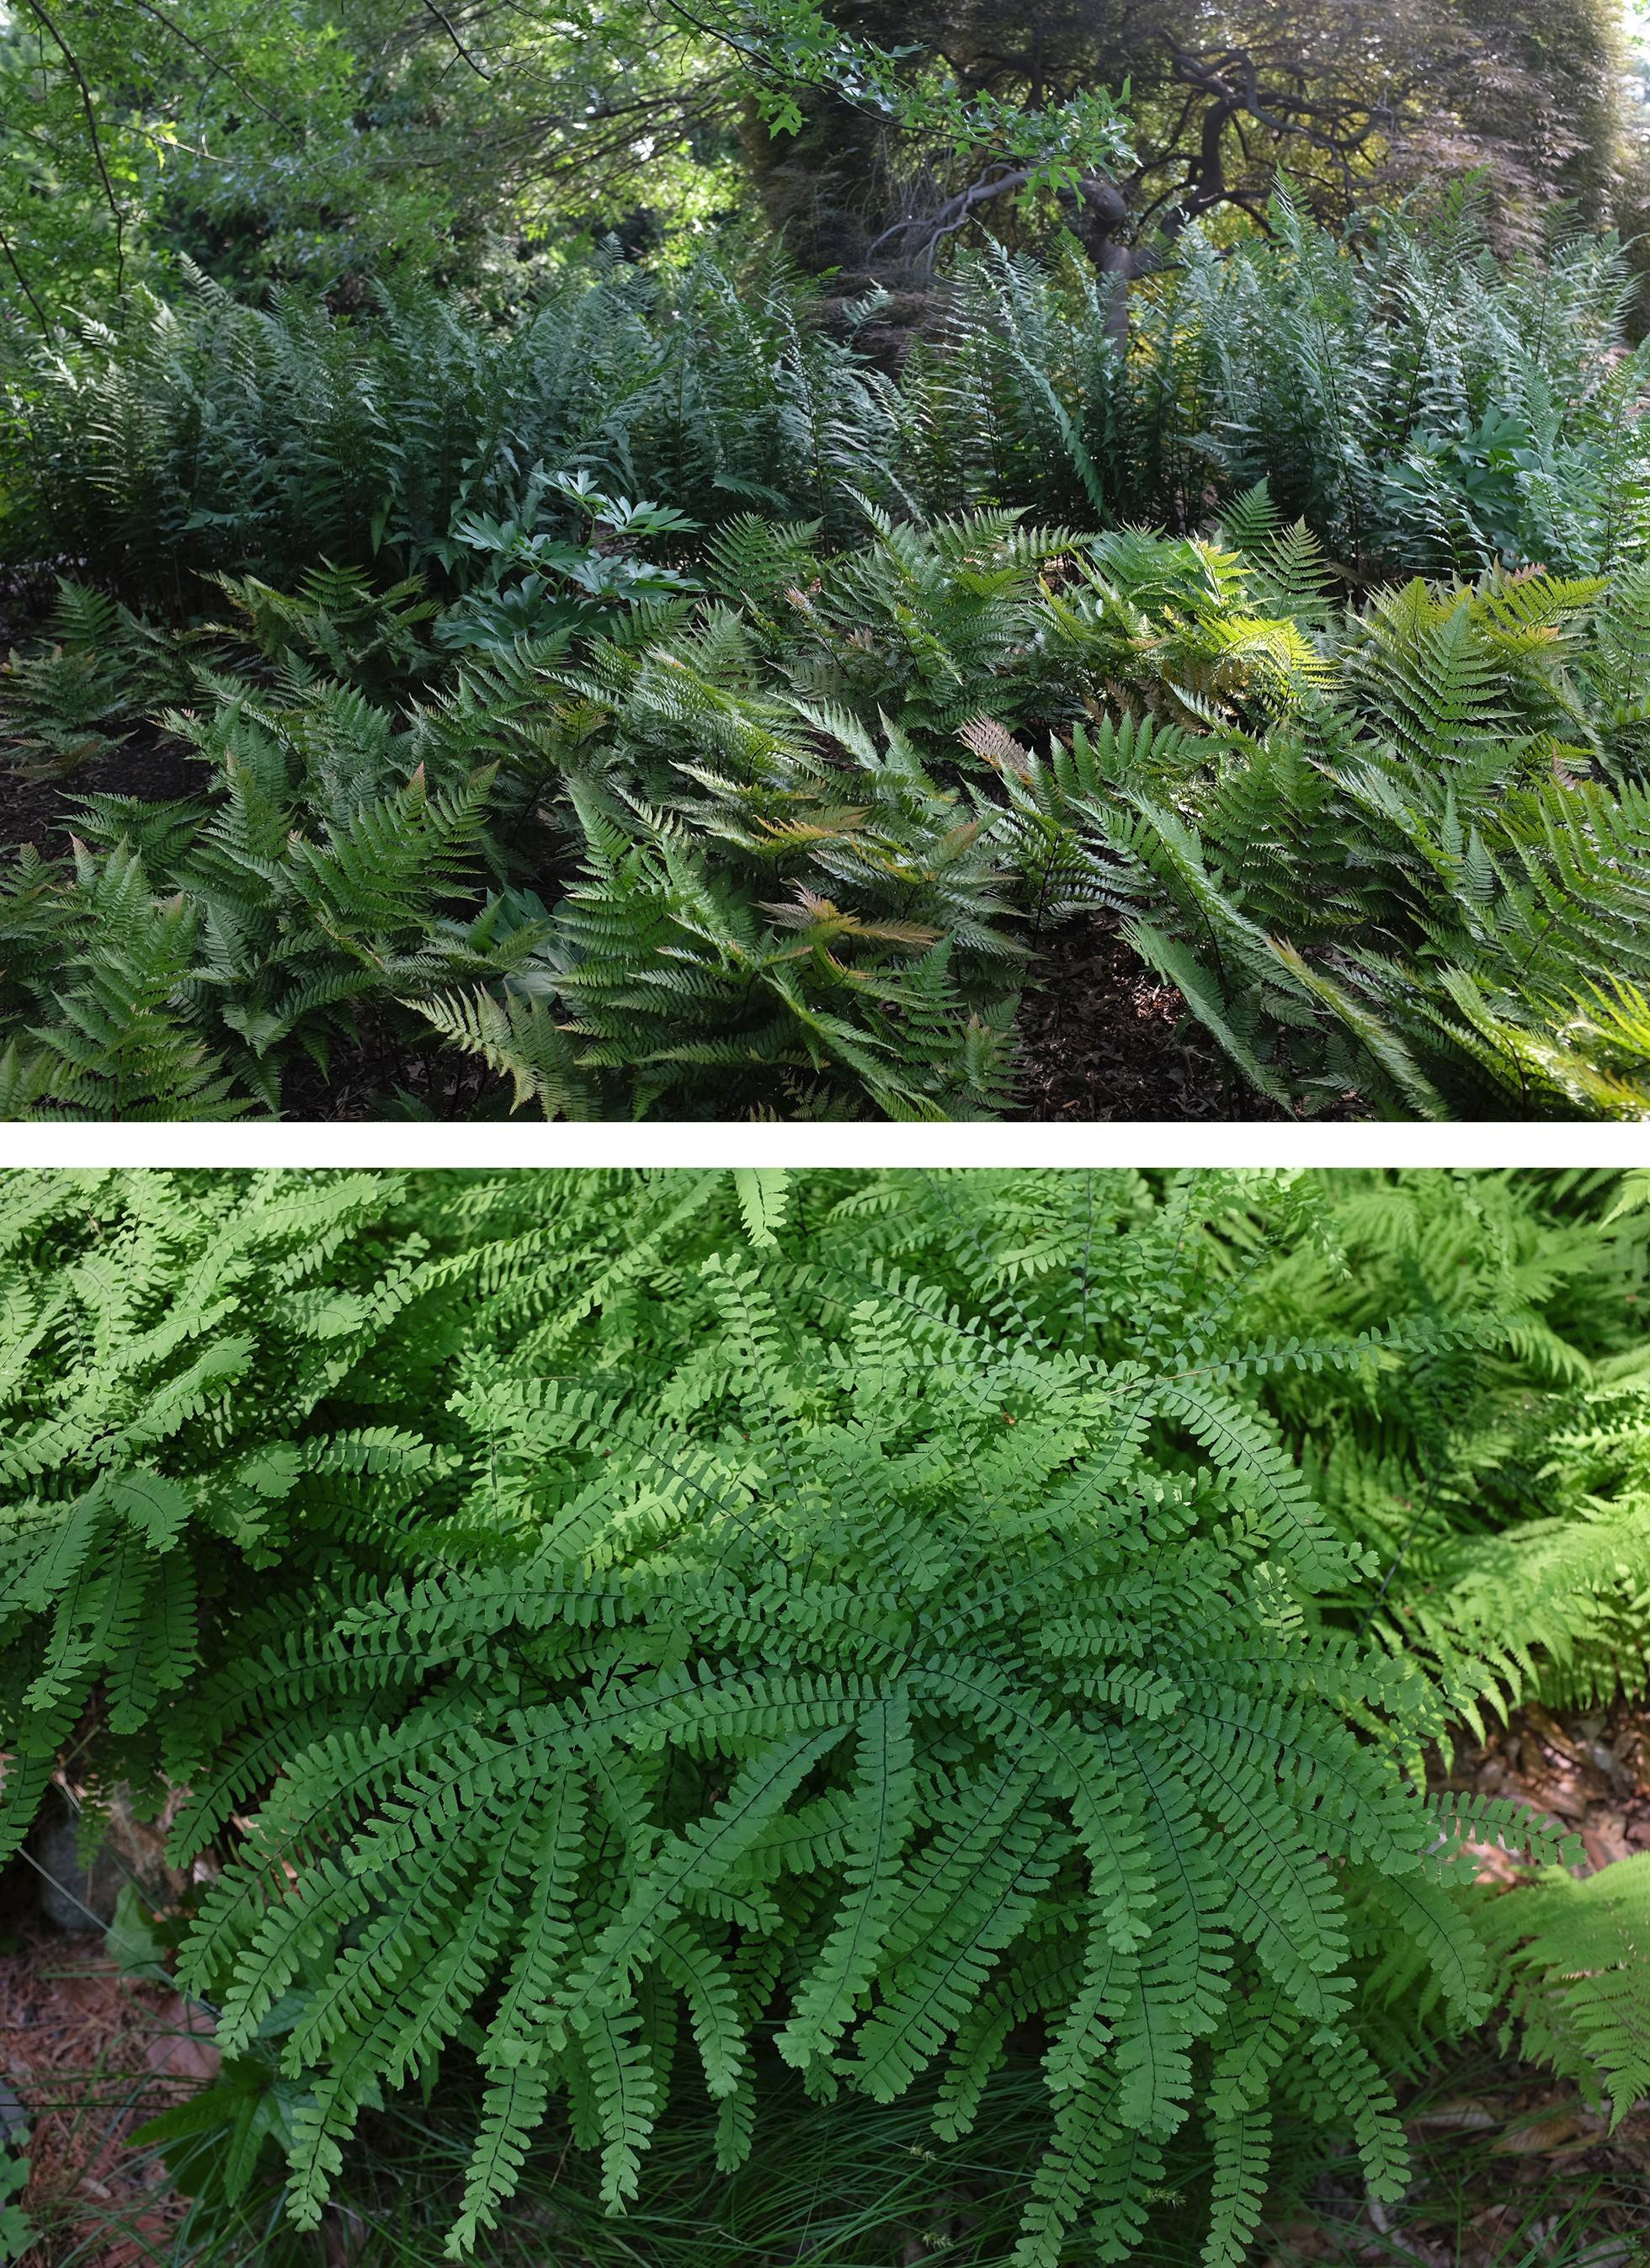 Top, the Autumn fern Brilliance, one of the few evergreen ferns. At bottom, the Northern Maidenhair fern has a sculptural quality.